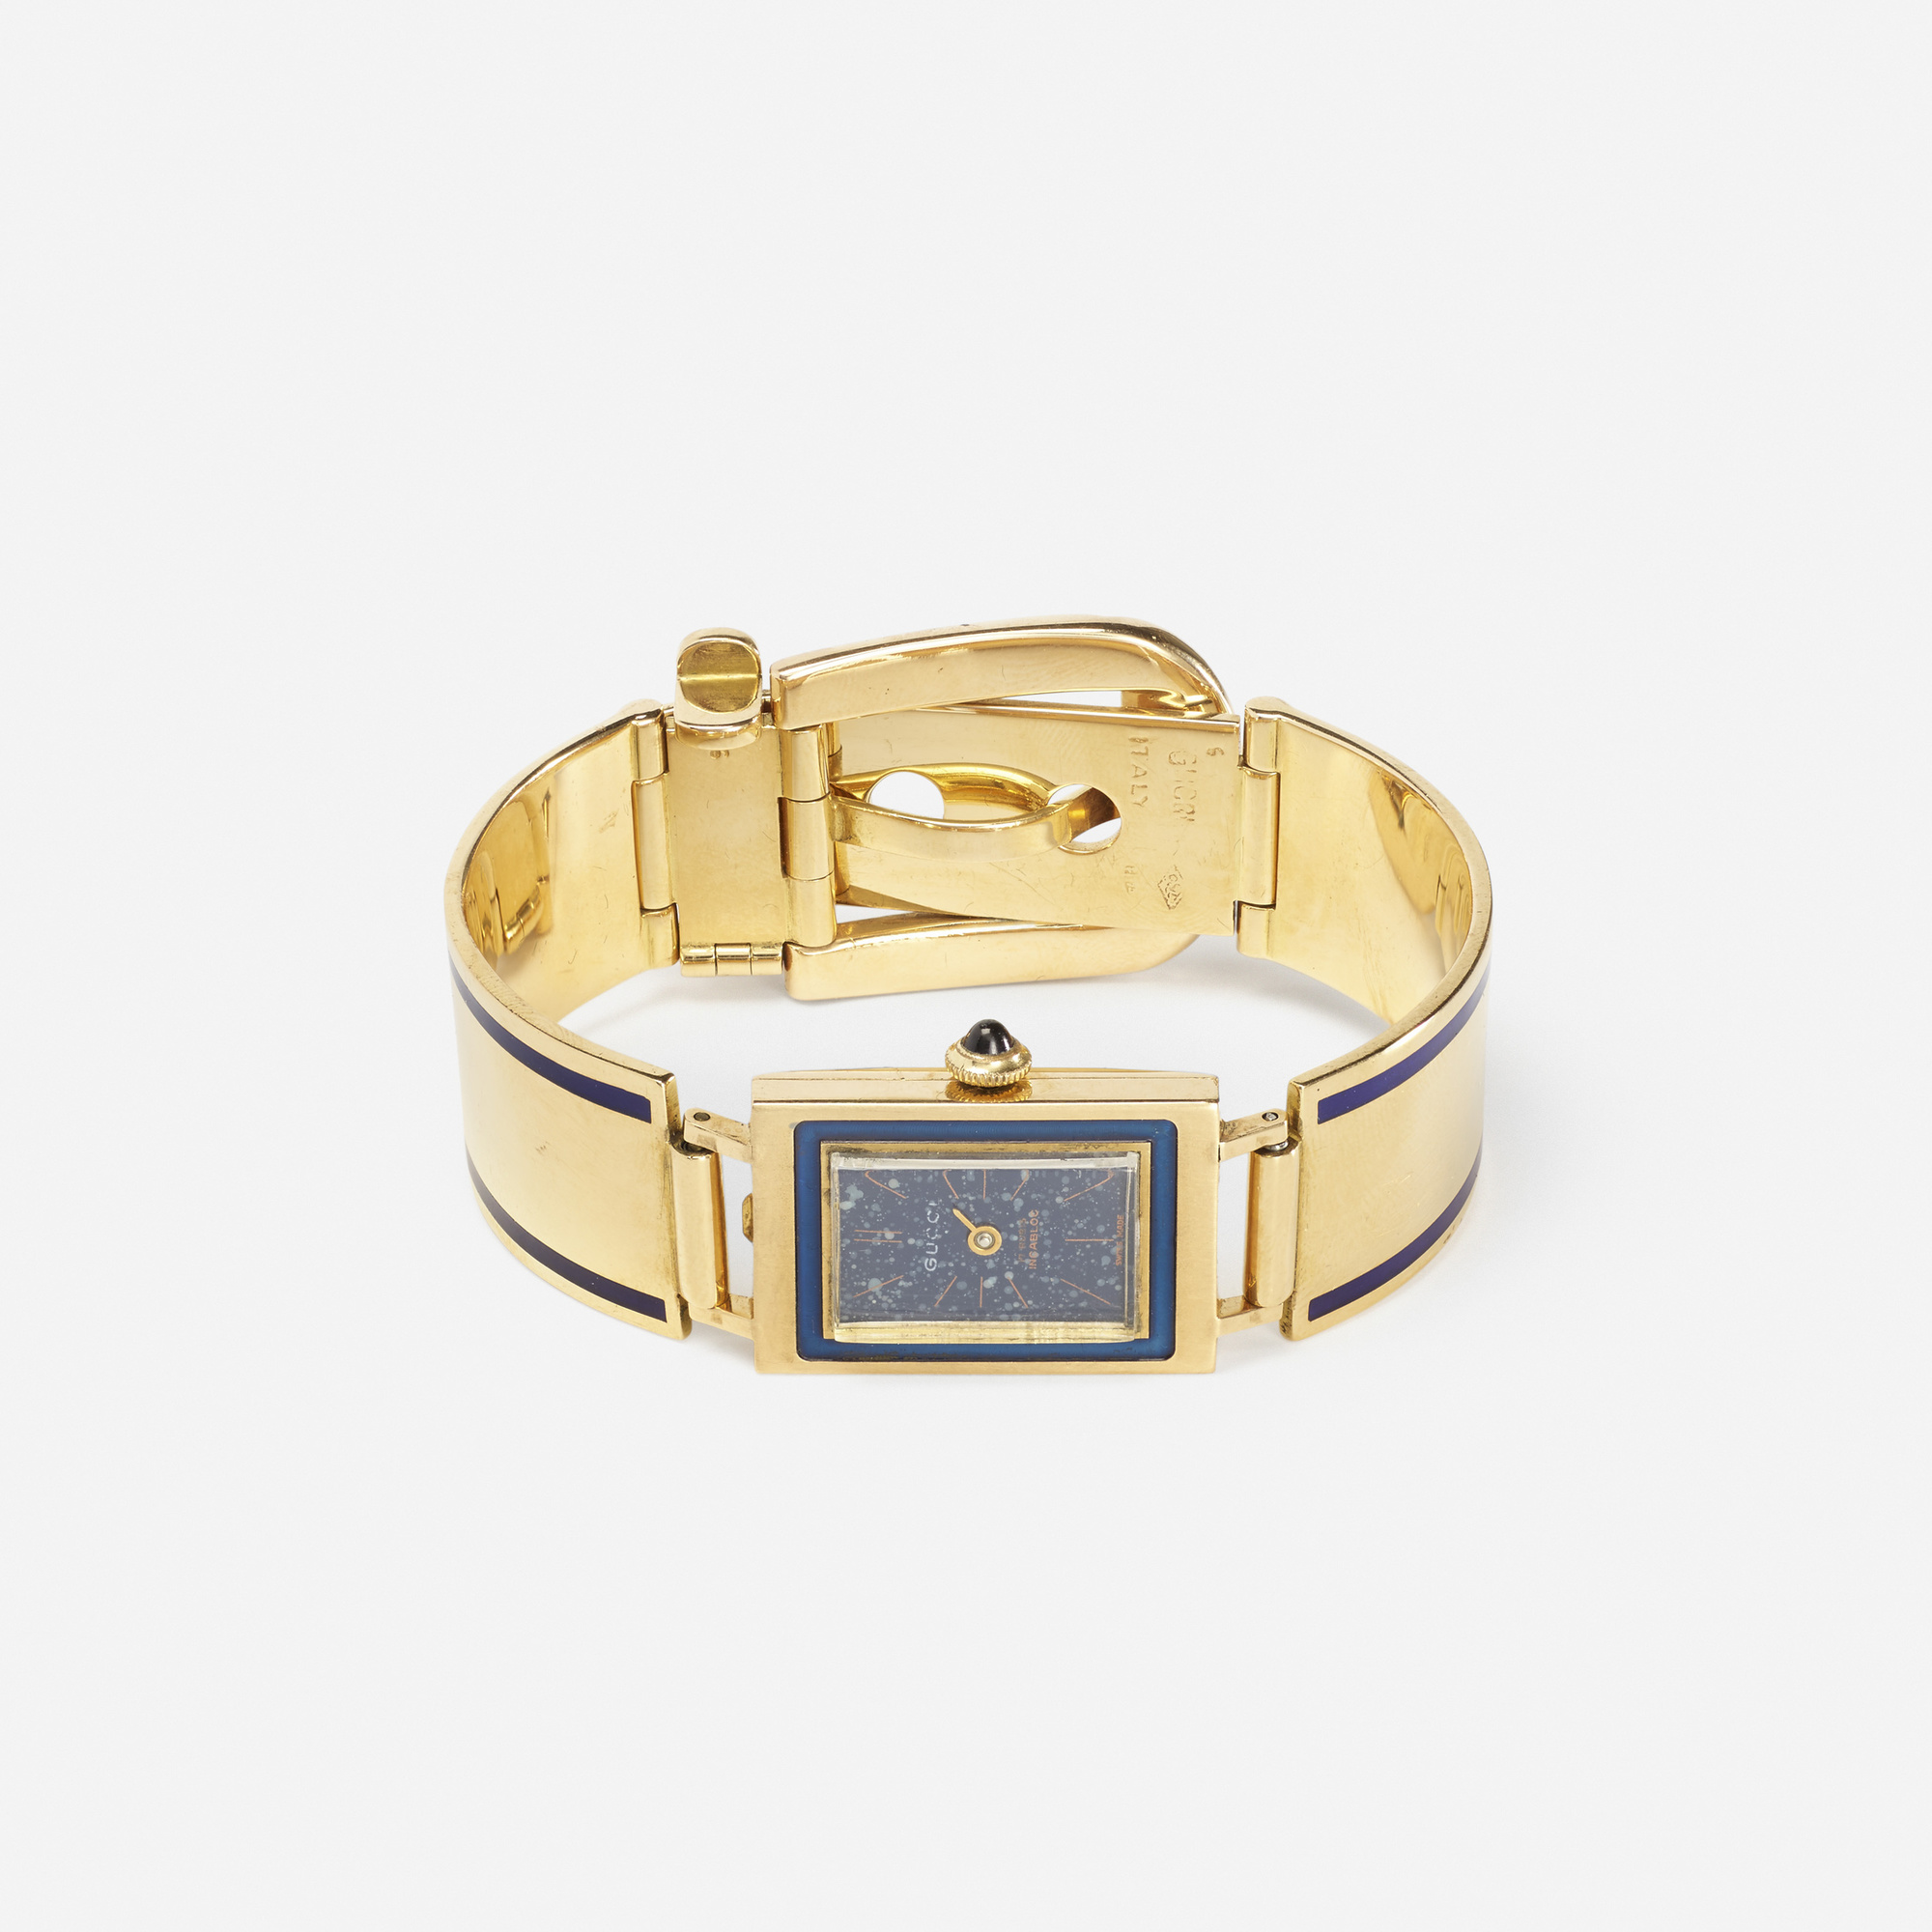 185: Gucci / A gold and enamel buckle watch (1 of 1)